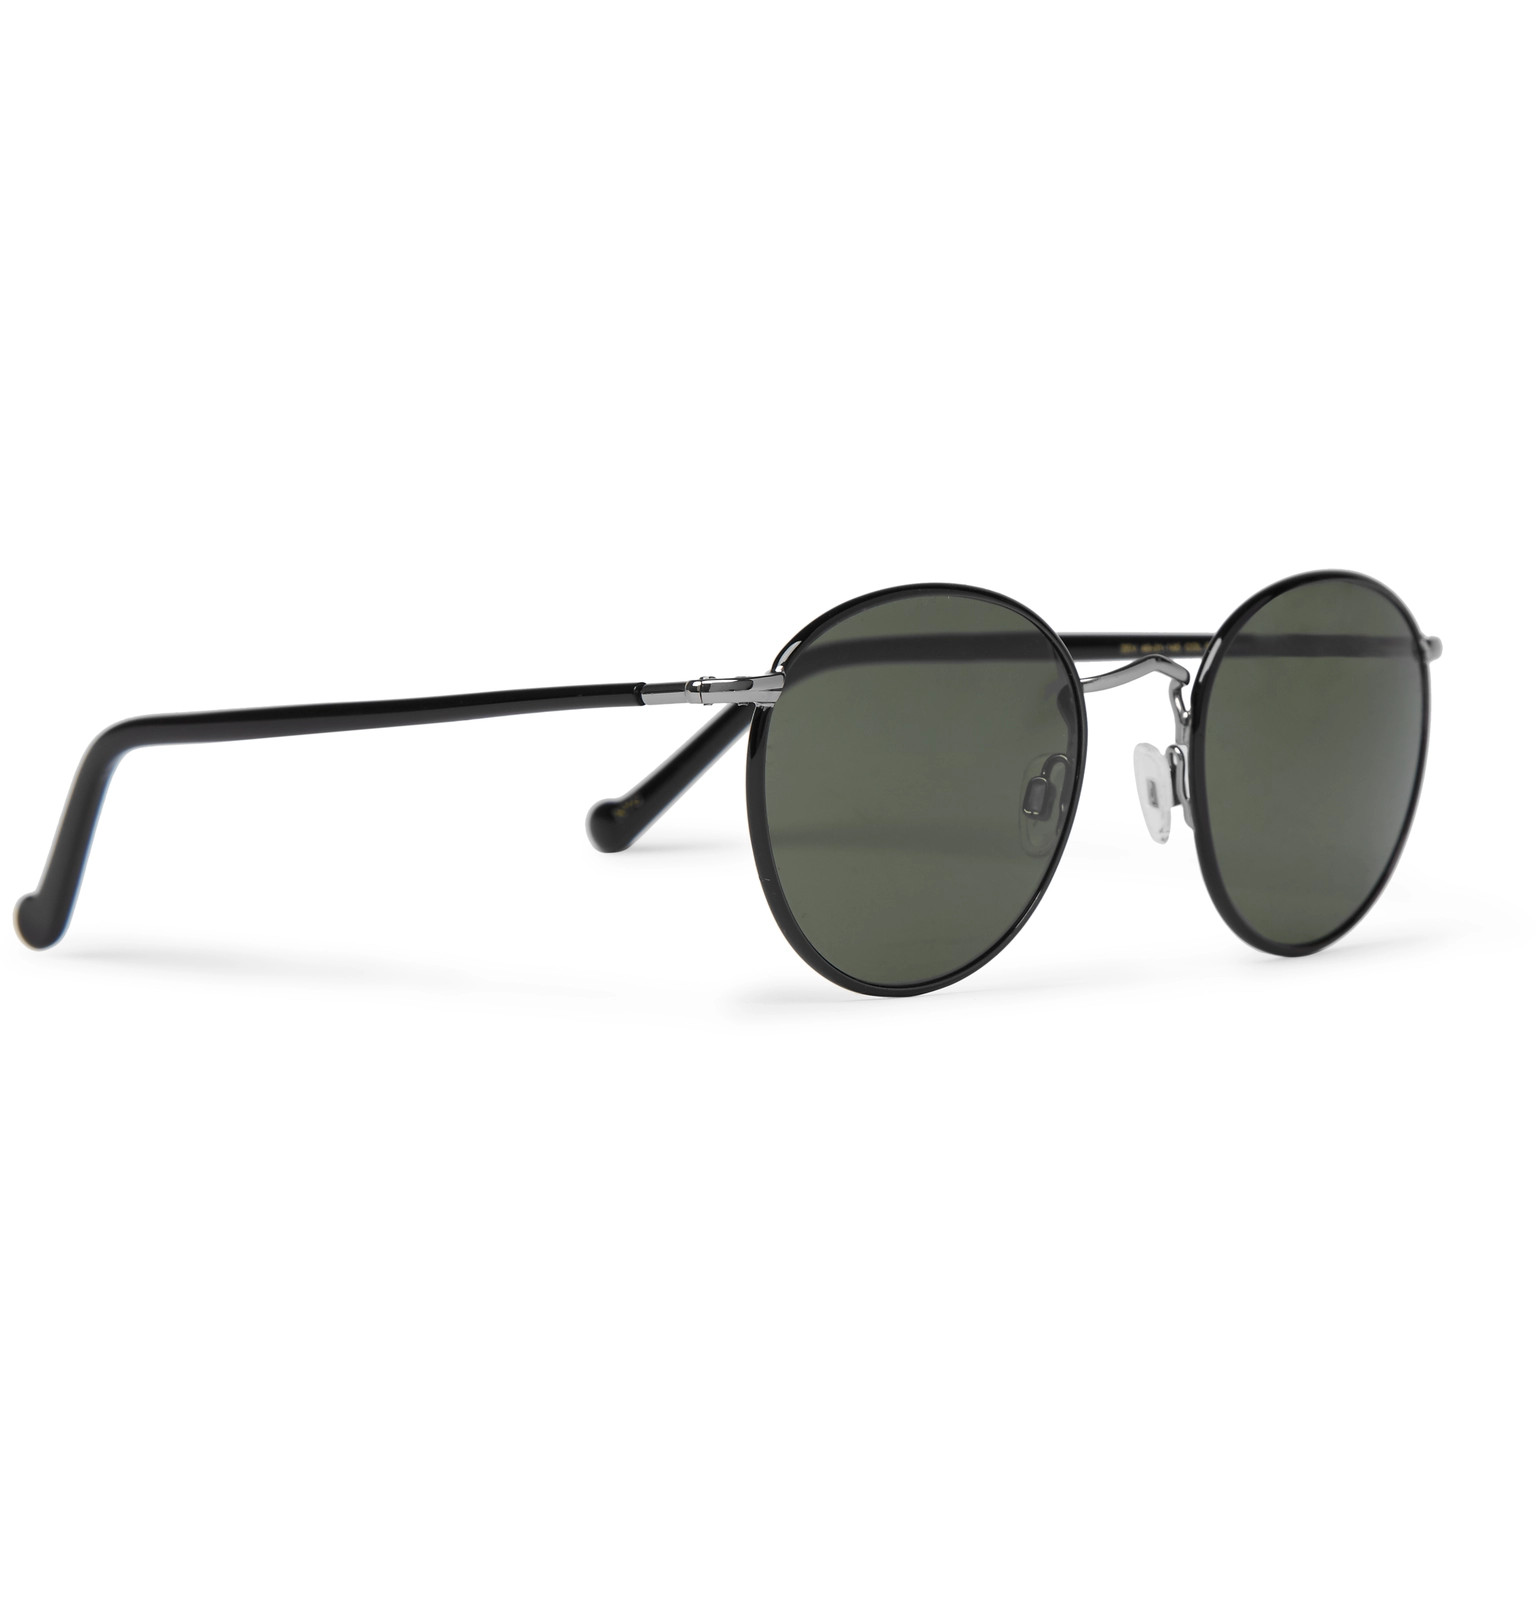 c9f447d920266 MoscotZev Round-Frame Silver-Tone and Enamel Sunglasses. €281.05   Approx.  CHF321.20. Tap to Close. 1